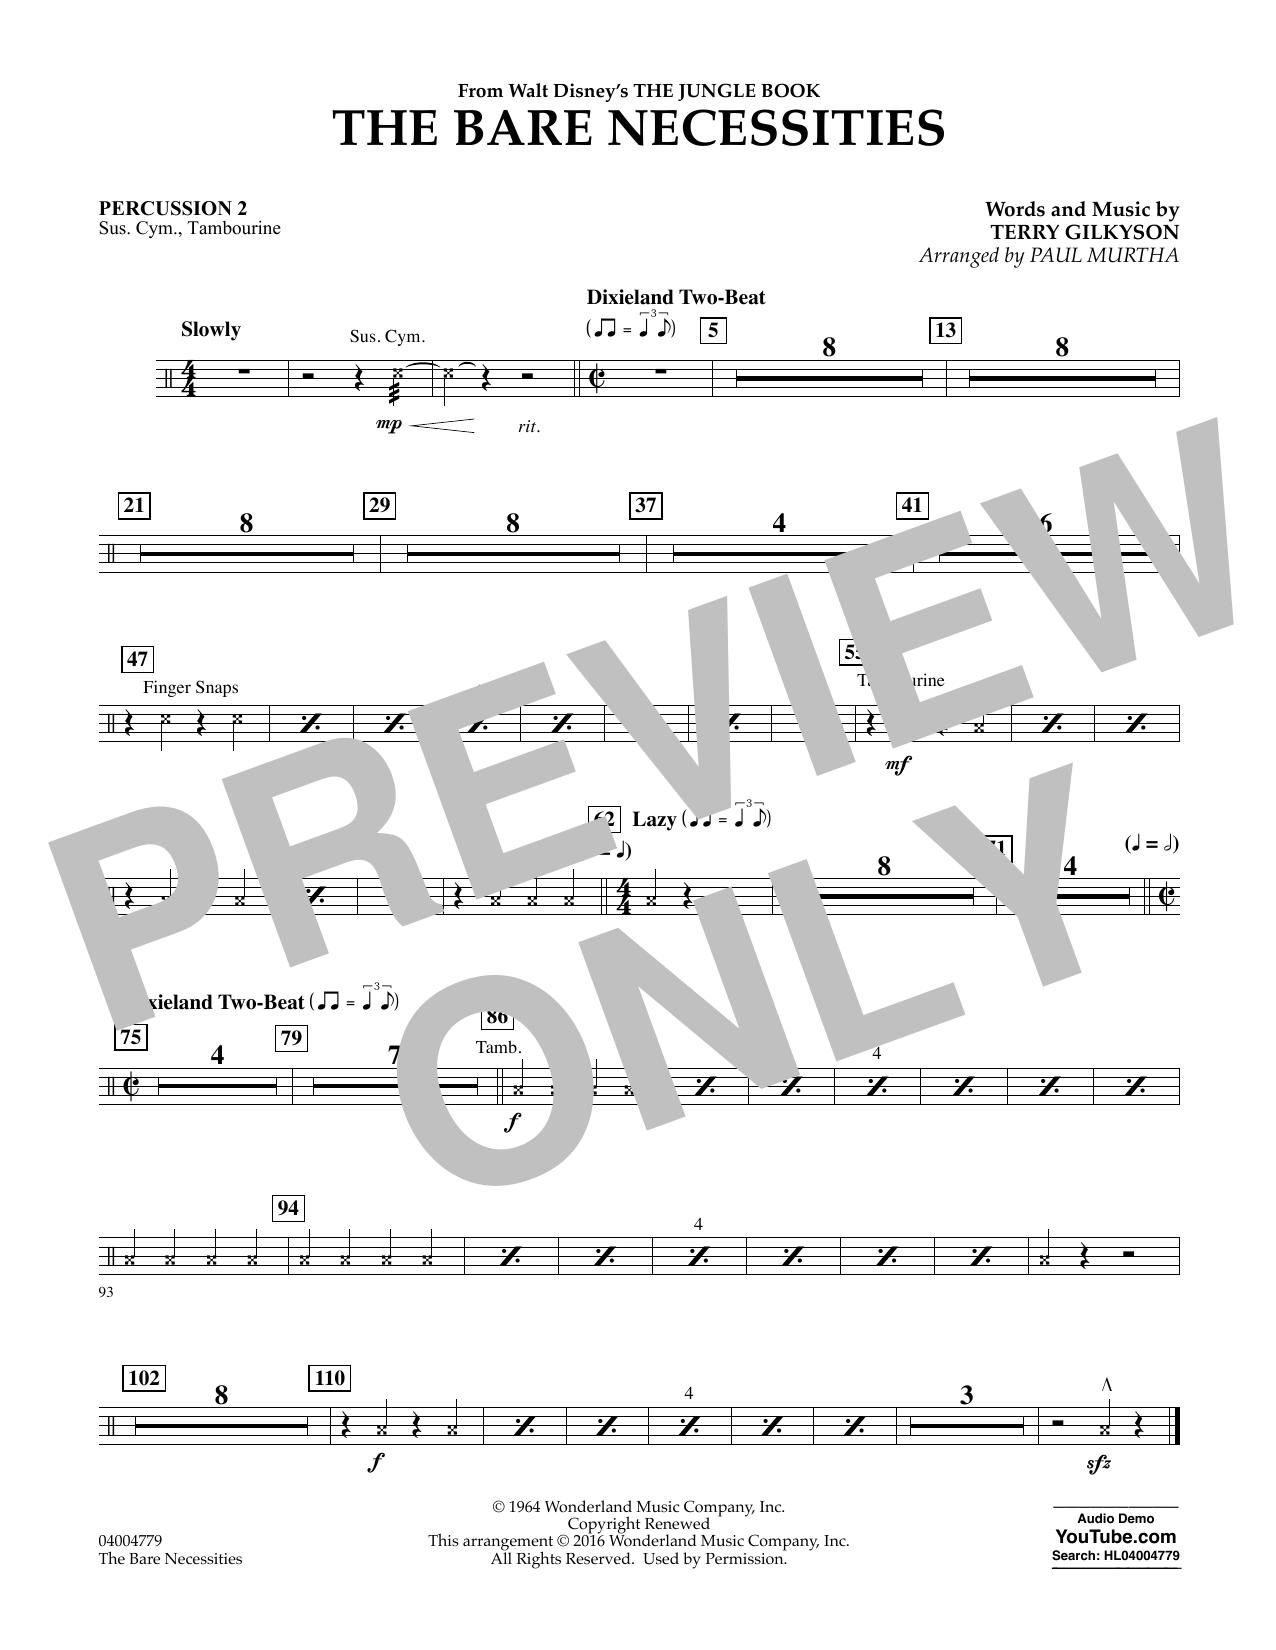 Paul Murtha The Bare Necessities - Percussion 2 sheet music notes and chords. Download Printable PDF.